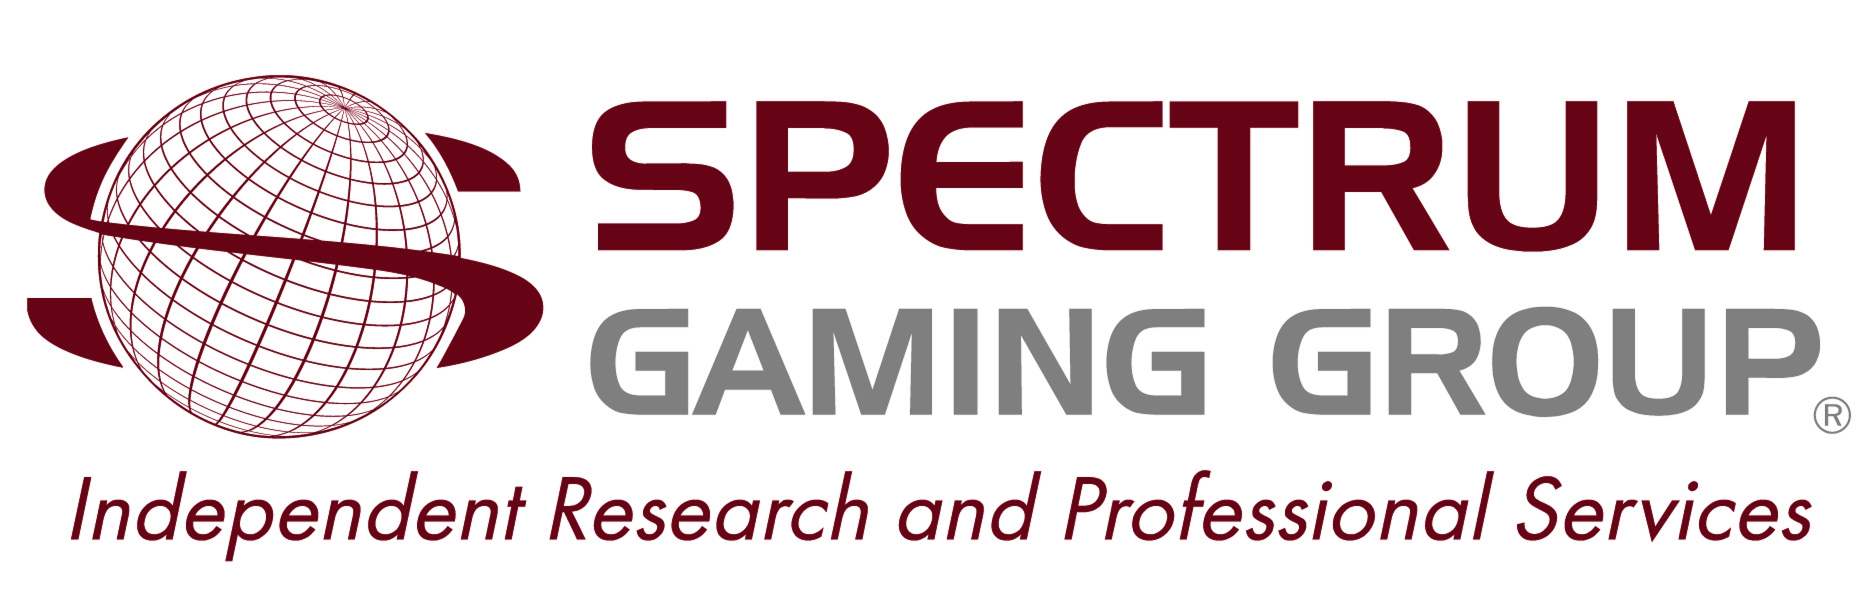 Spectrum Gaming